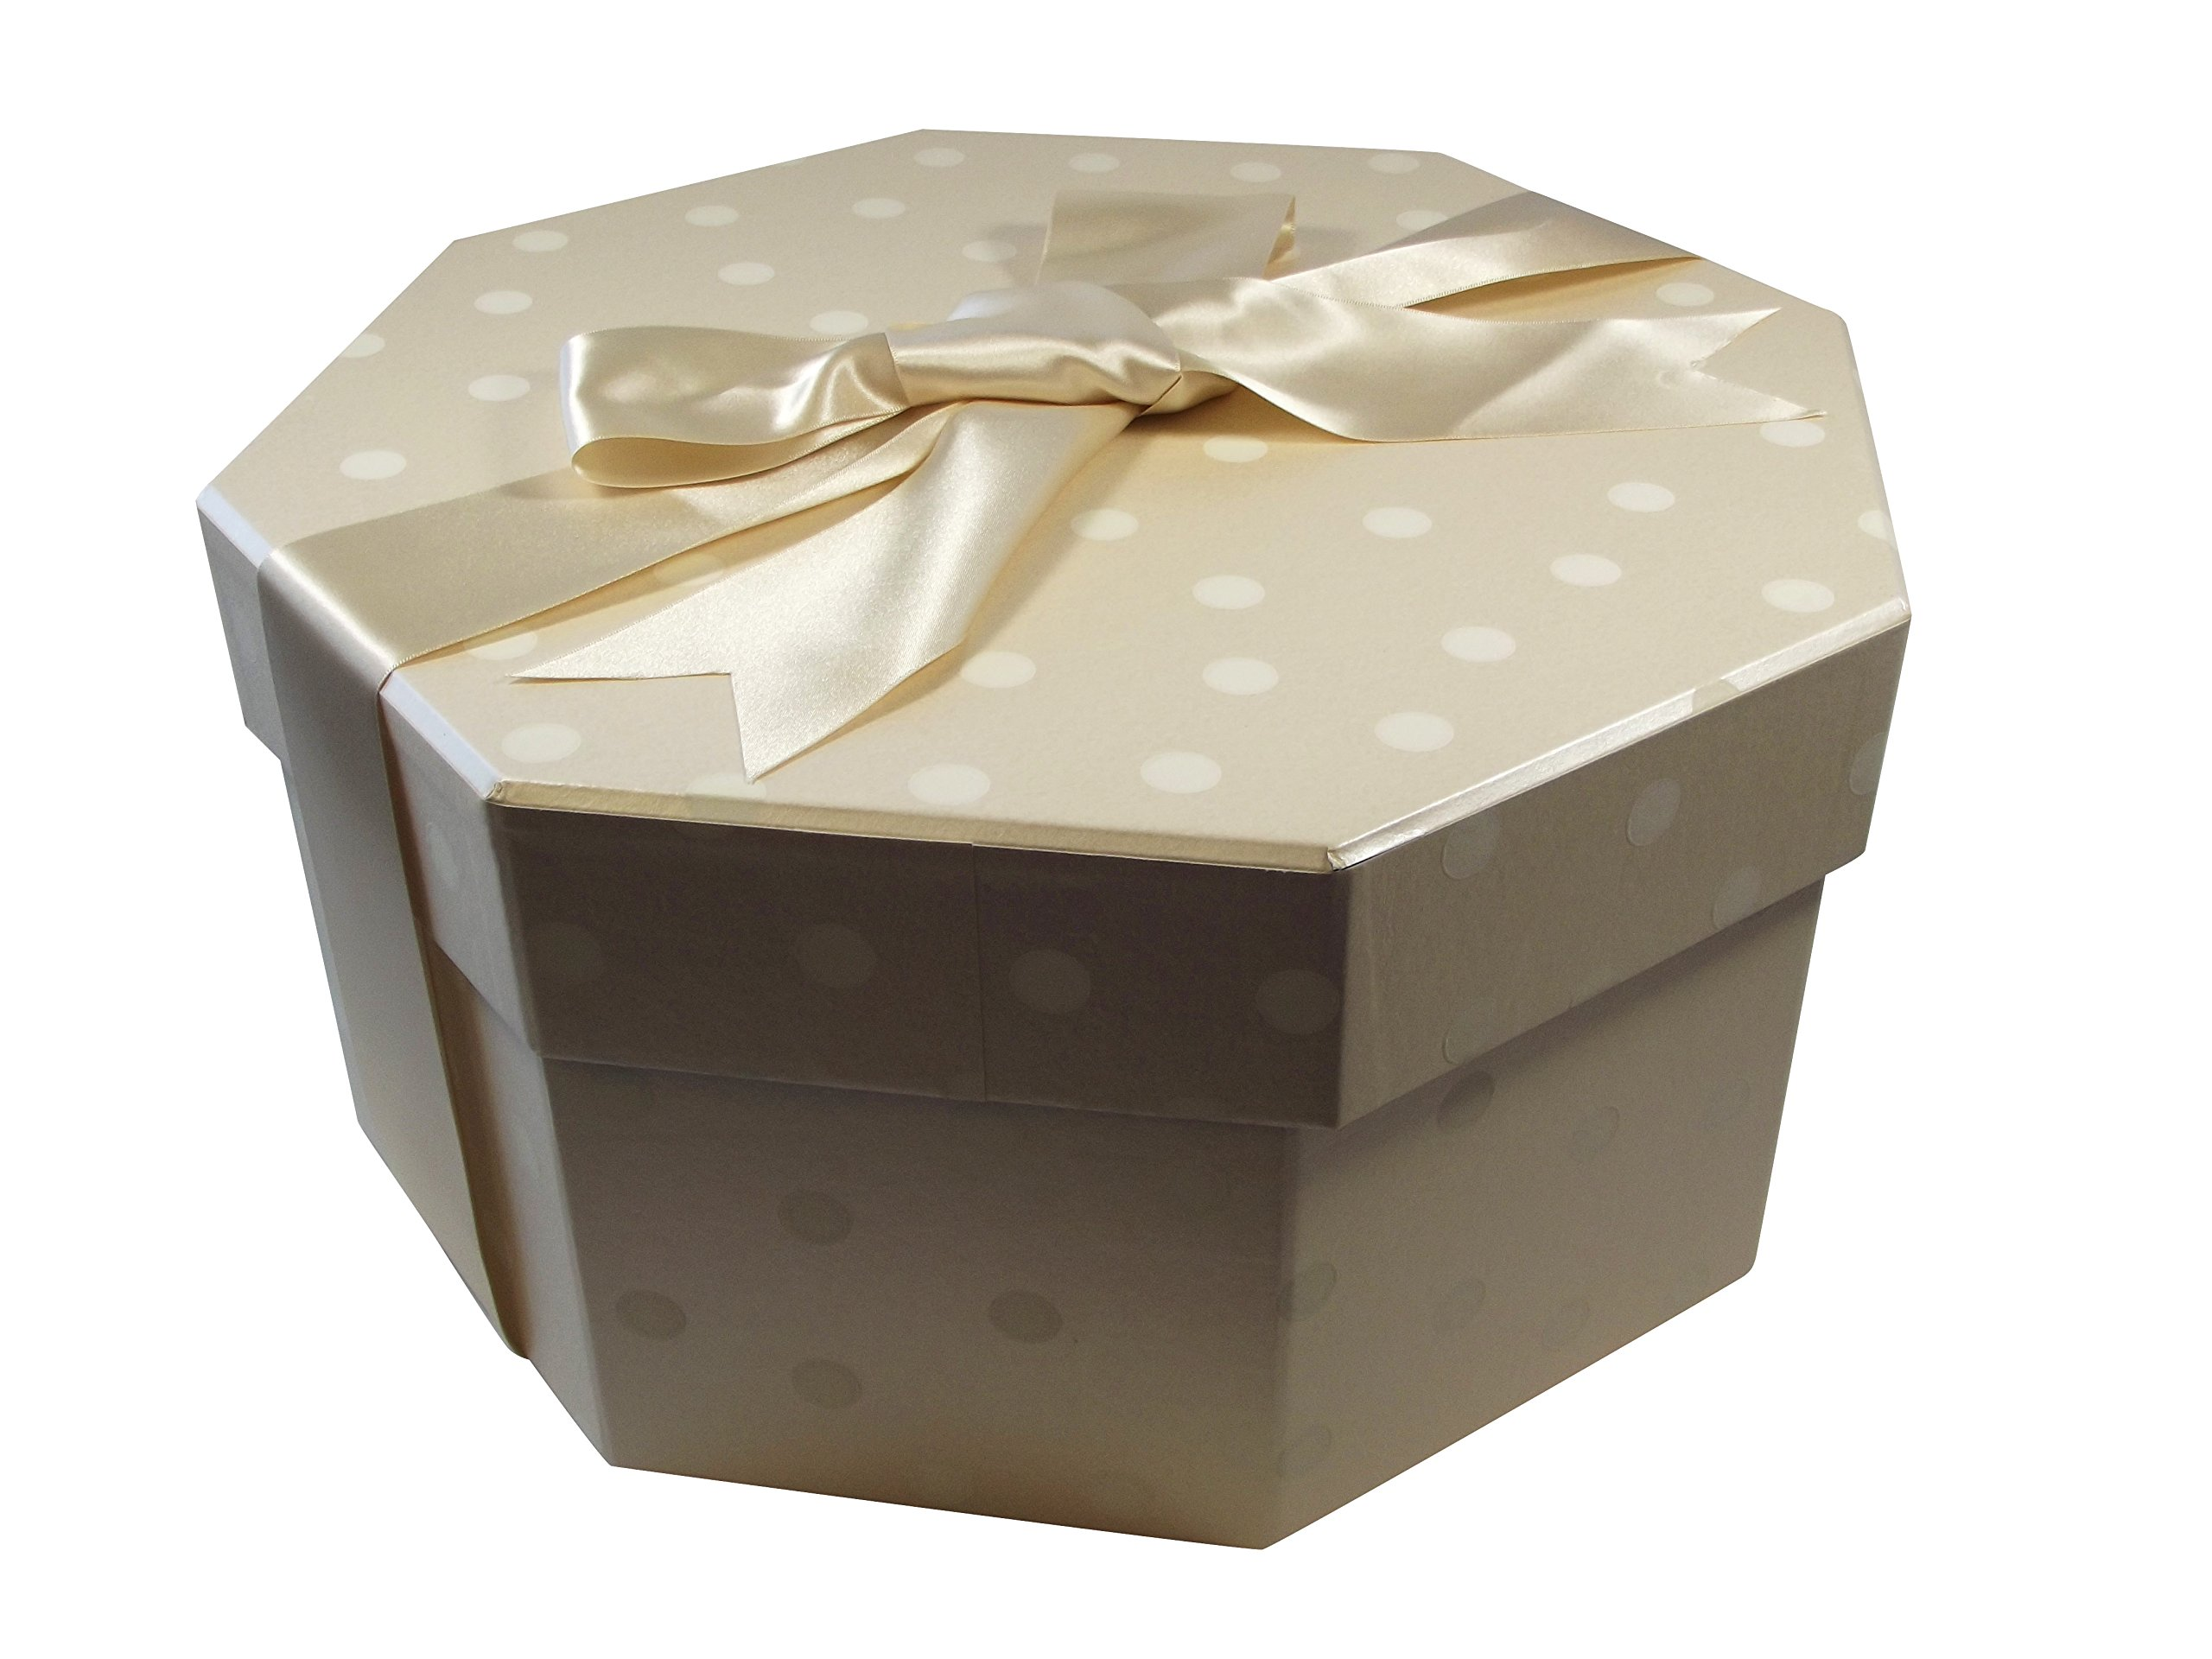 Foster-Stephens, inc Colorful Hat Box - Polka Dot Champaign (Large: 20.08'' Diameter x 8.27'') by Foster-Stephens, inc